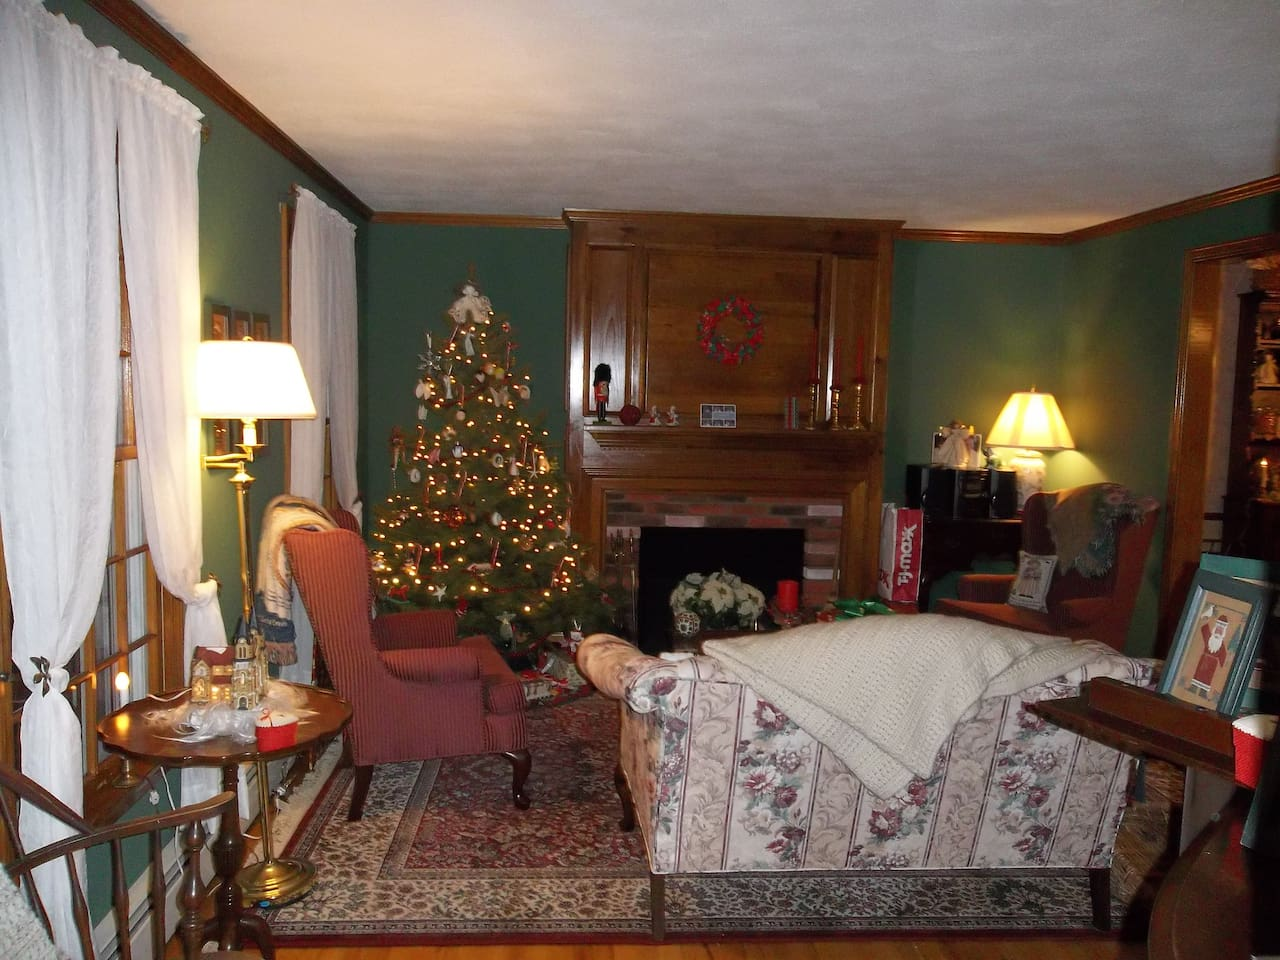 Living room at Christmas